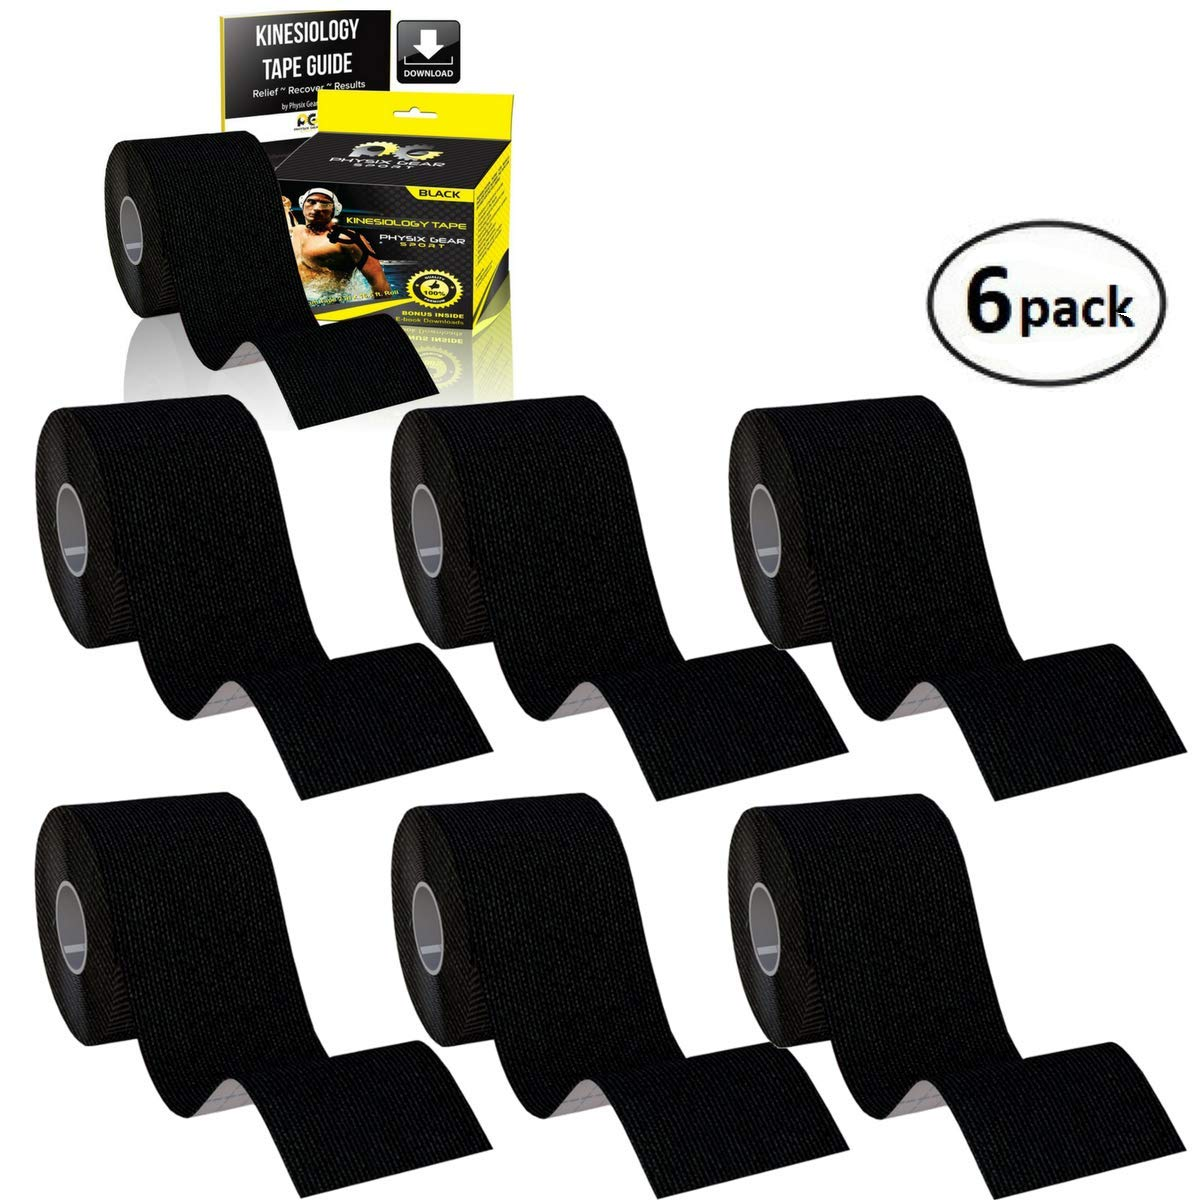 Physix Gear Sport 6 Pack Kinesiology Tape - Free Illustrated E-Guide - 16ft Uncut Roll - Best Pain Relief Adhesive for Muscles, Shin Splints Knee & Shoulder - 24/7 Waterproof Therapeutic Aid (BLACK)